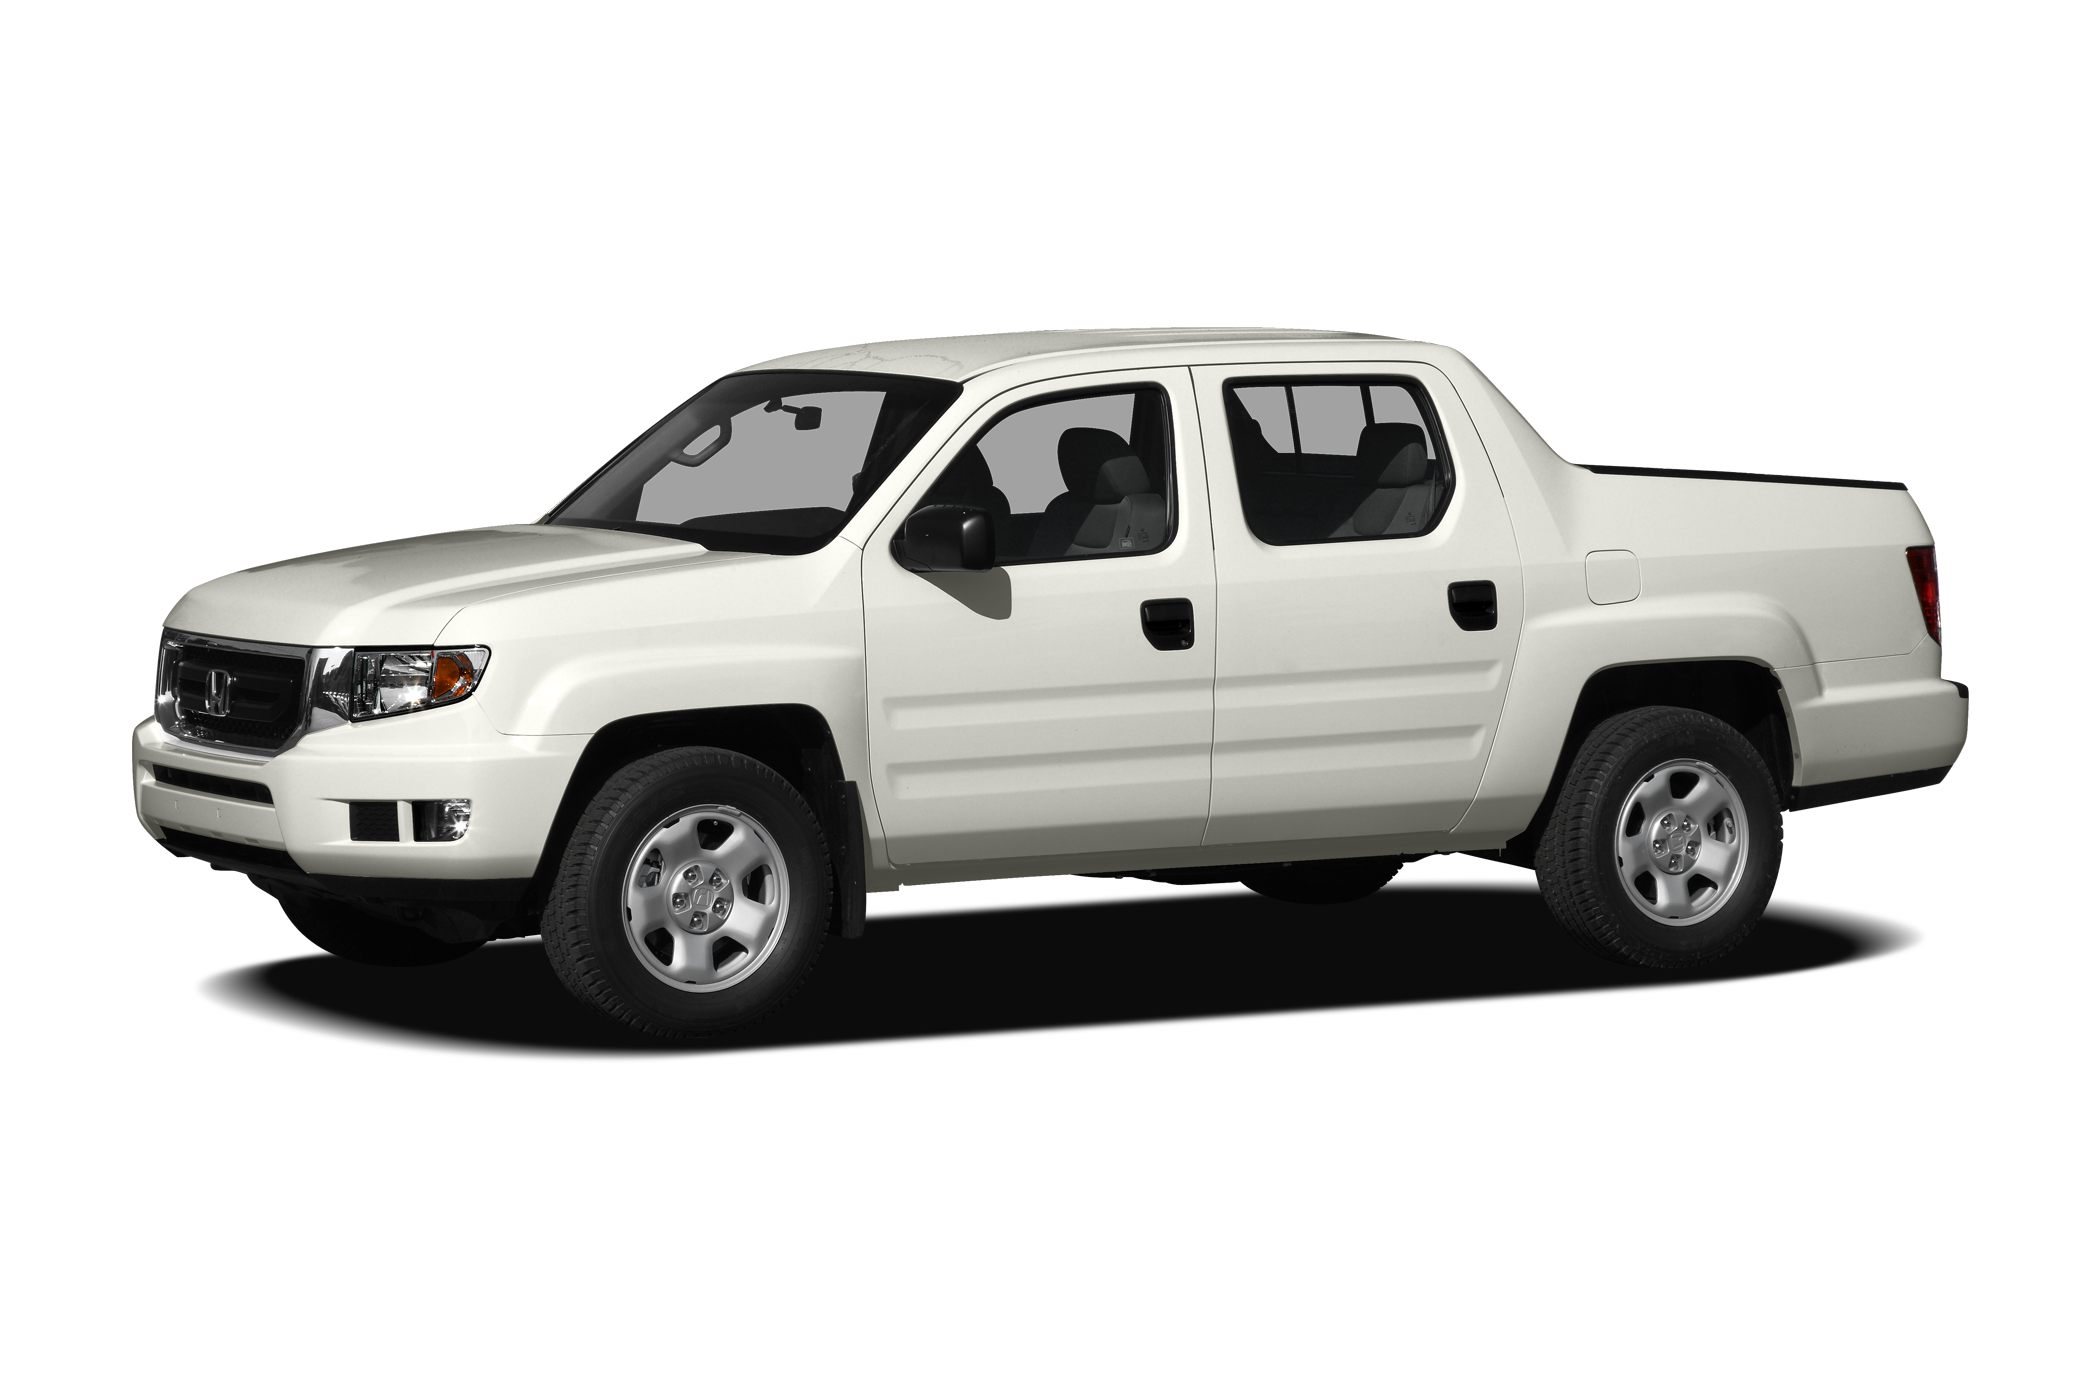 2010 Honda Ridgeline RTL ITS OUR 50TH ANNIVERSARY HERE AT MARTYS AND TO CELEBRATE WERE OFFERING